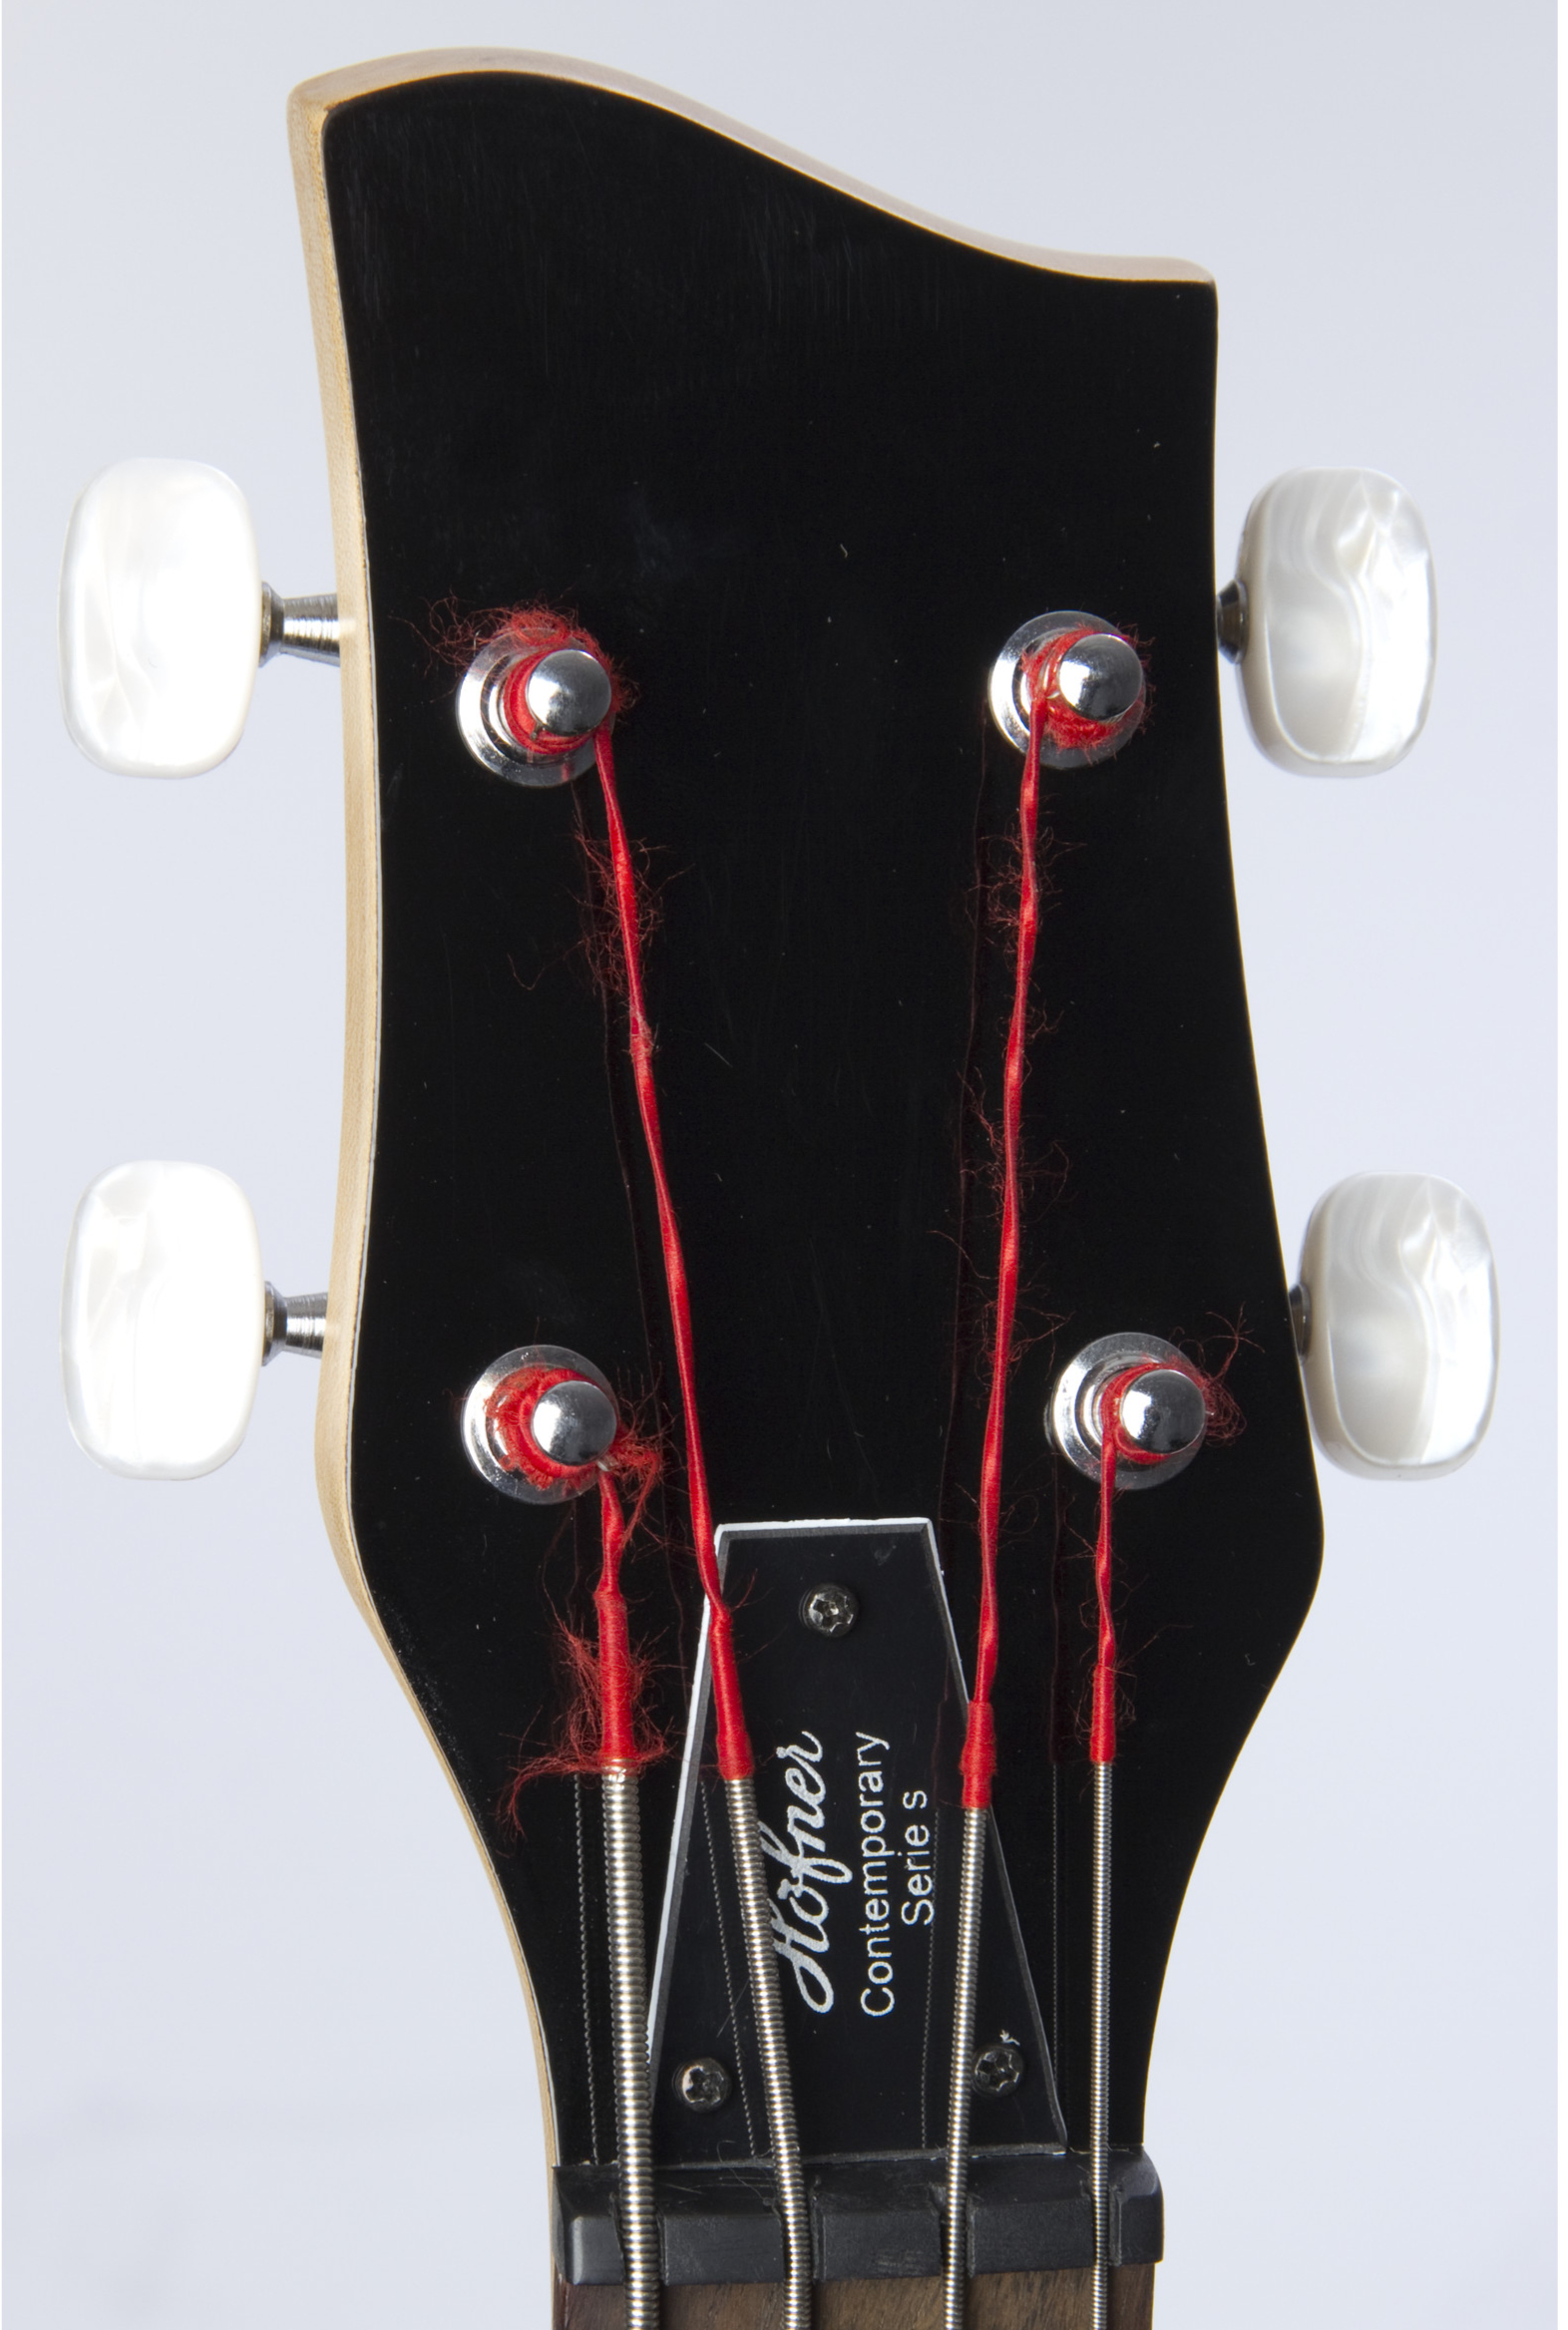 HÖFNER Shorty Headstock Detail